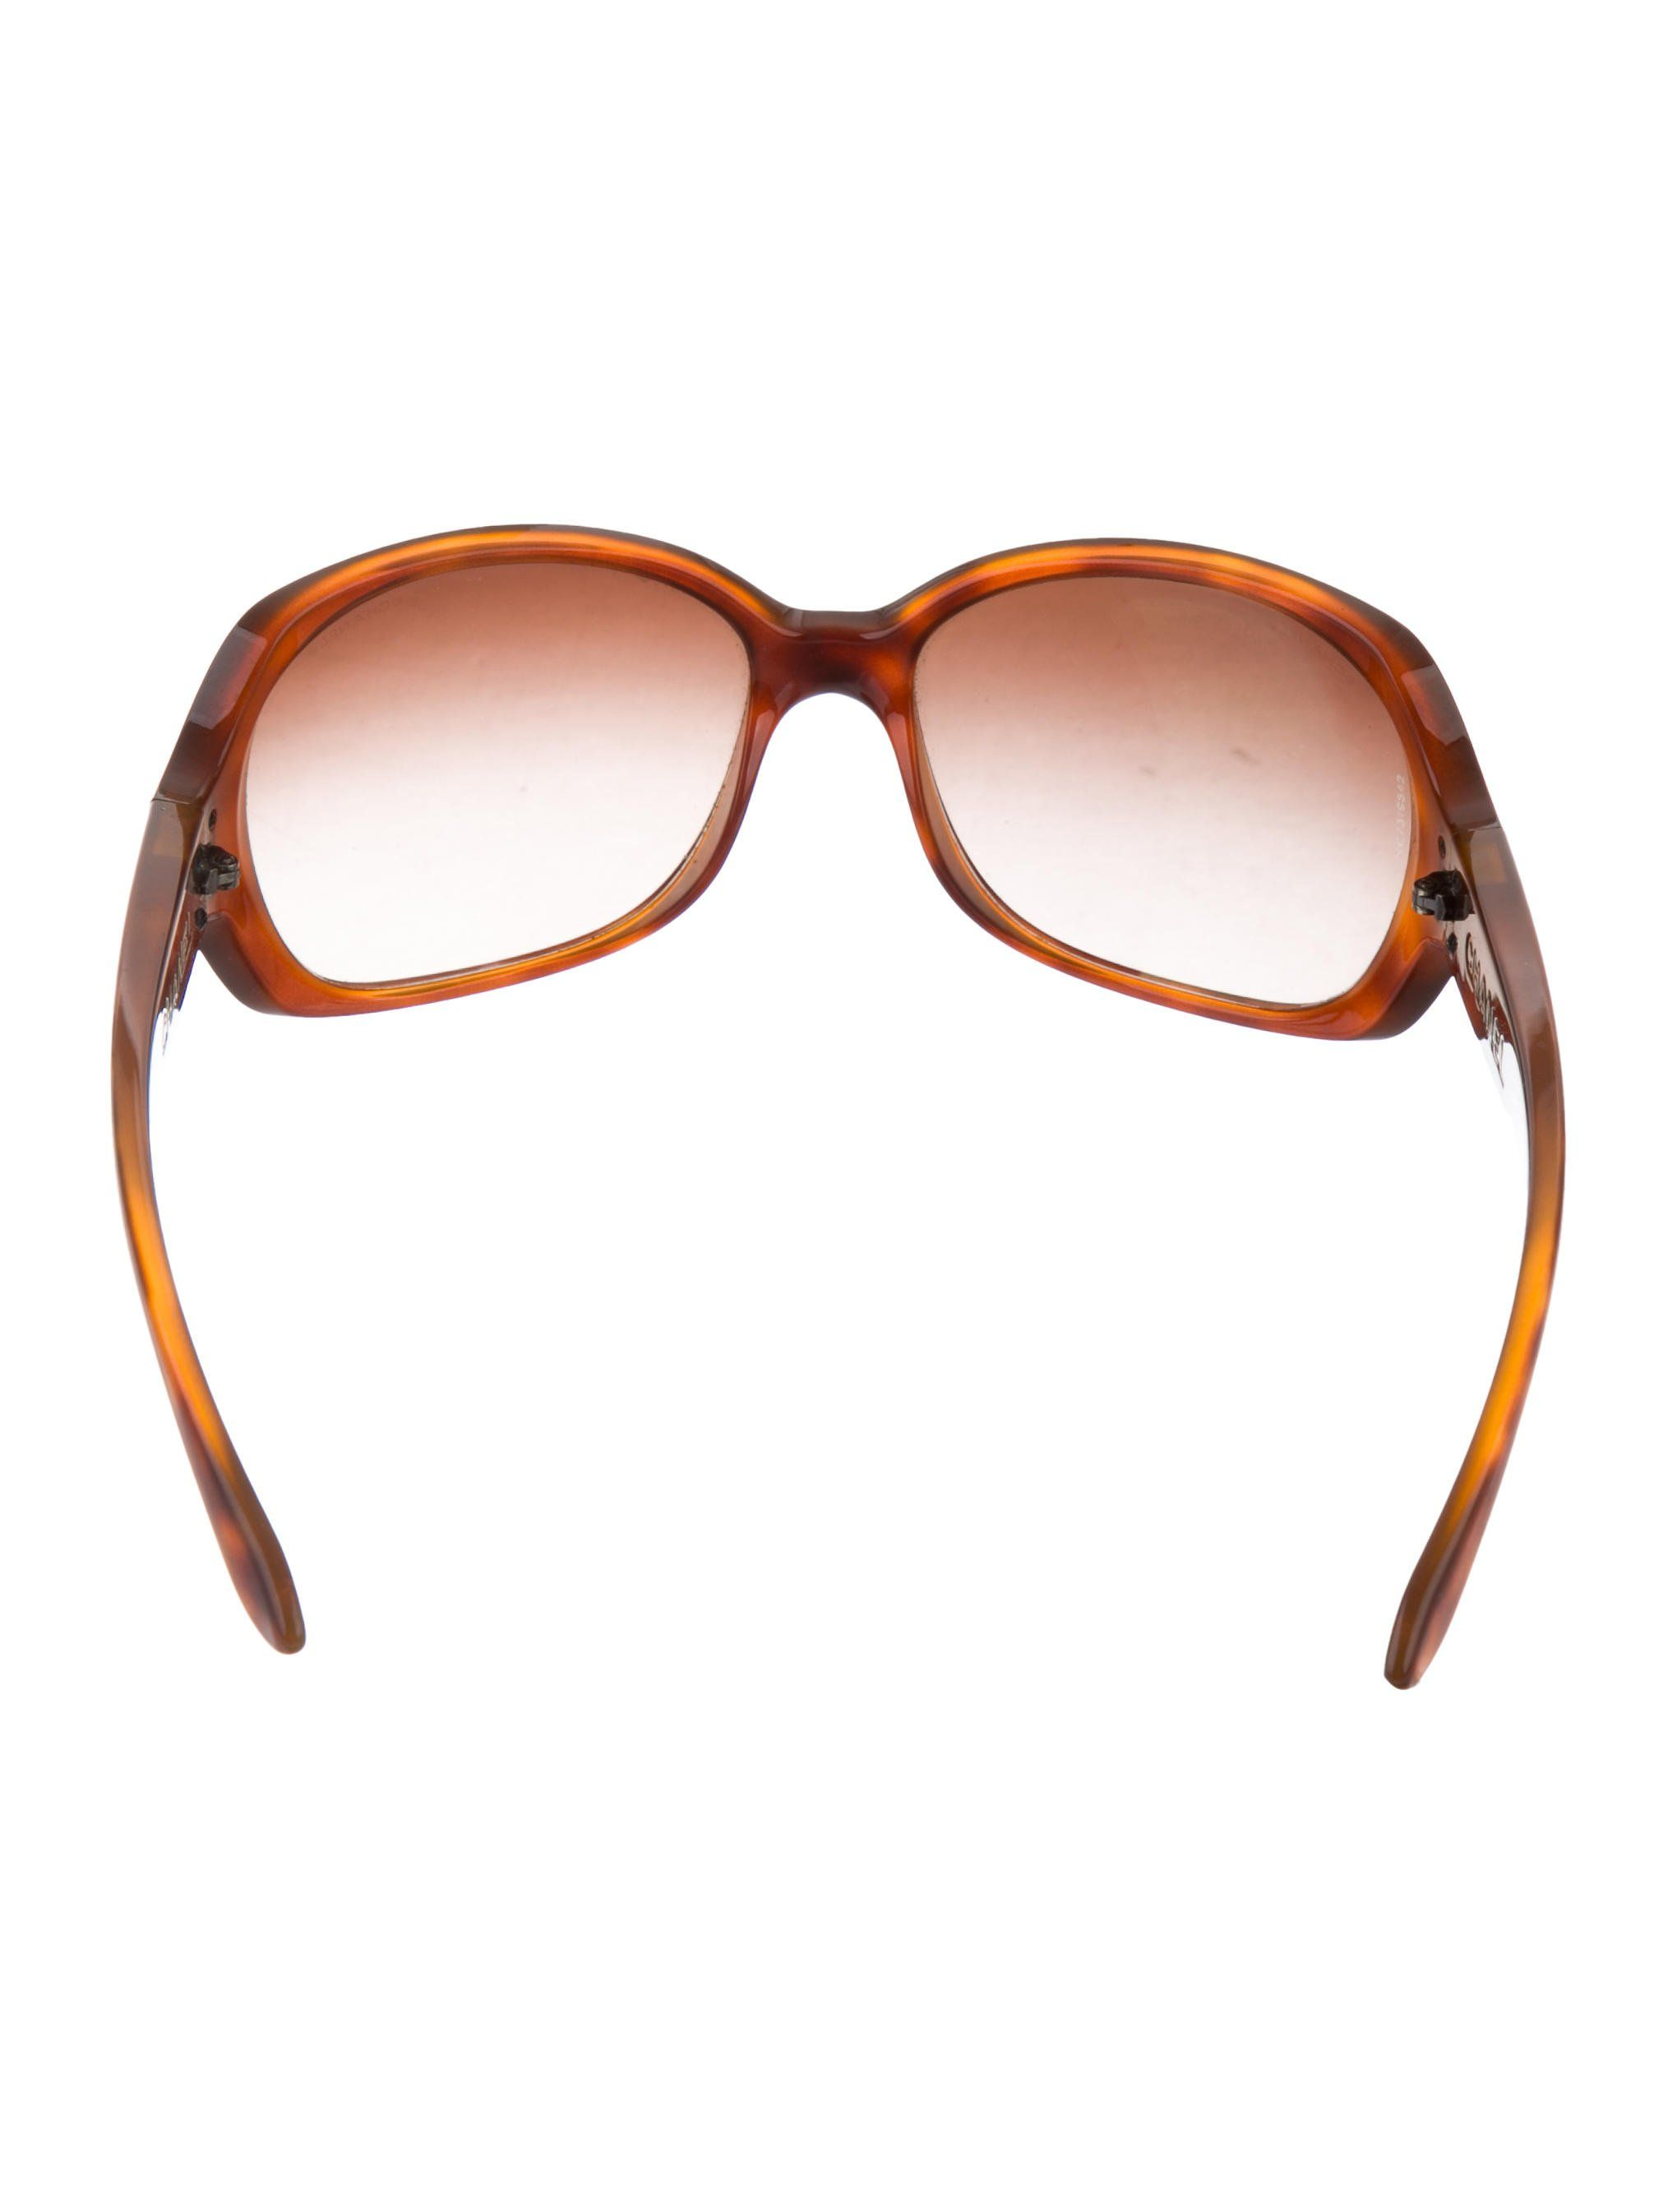 78730d298a9 Brown tortoiseshell acetate Chanel sunglasses with logo at temples and  gradient lenses.chanel acetate Chanel Brown